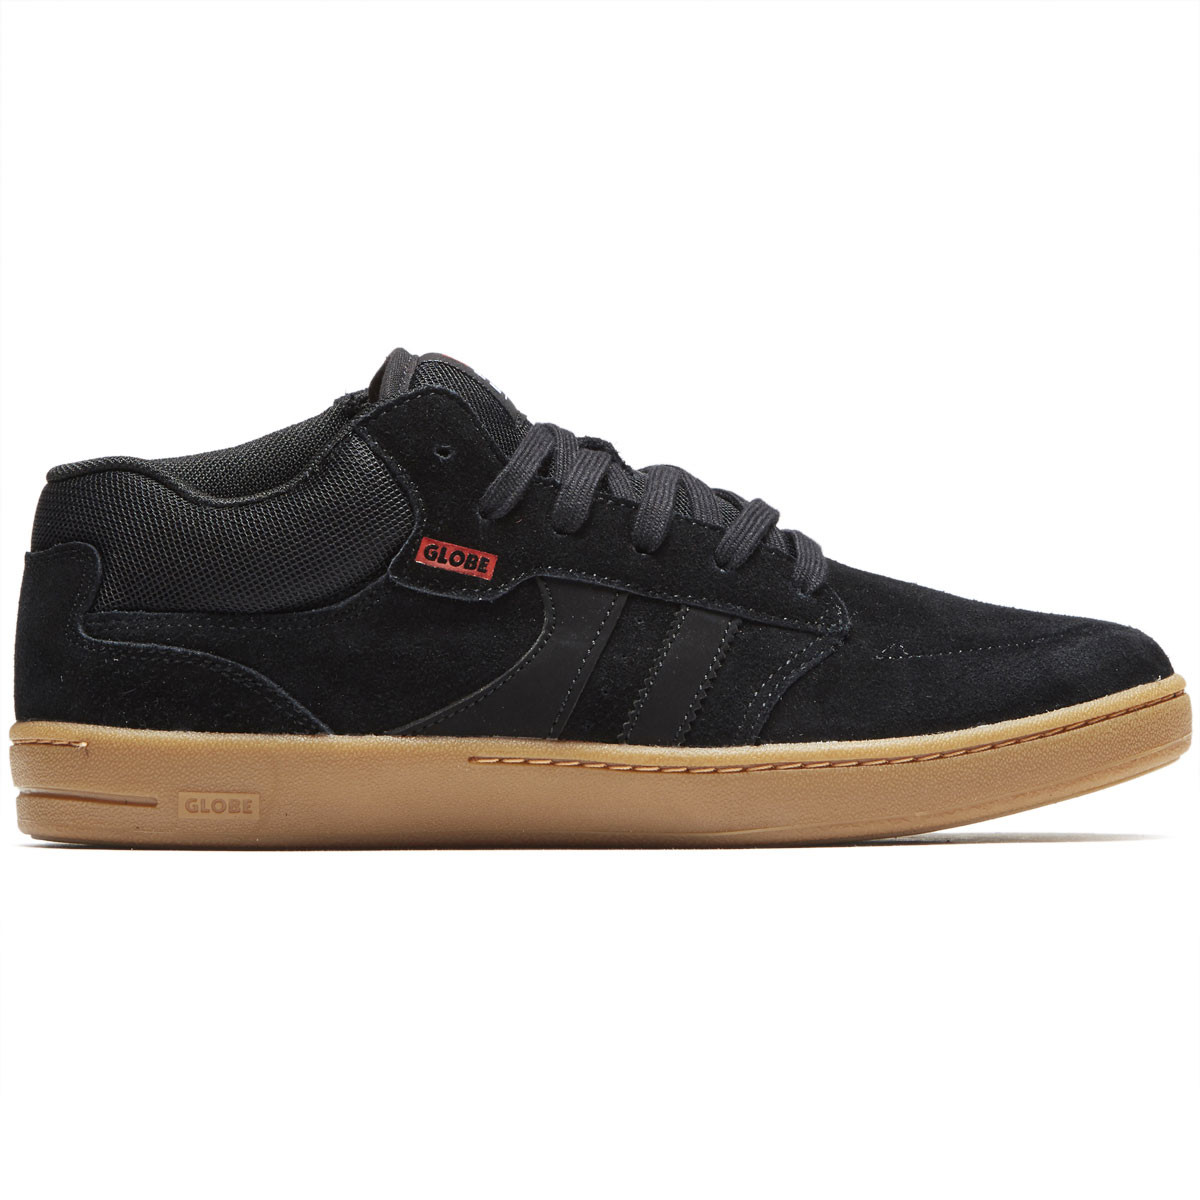 Globe Octave Mid RM Shoes